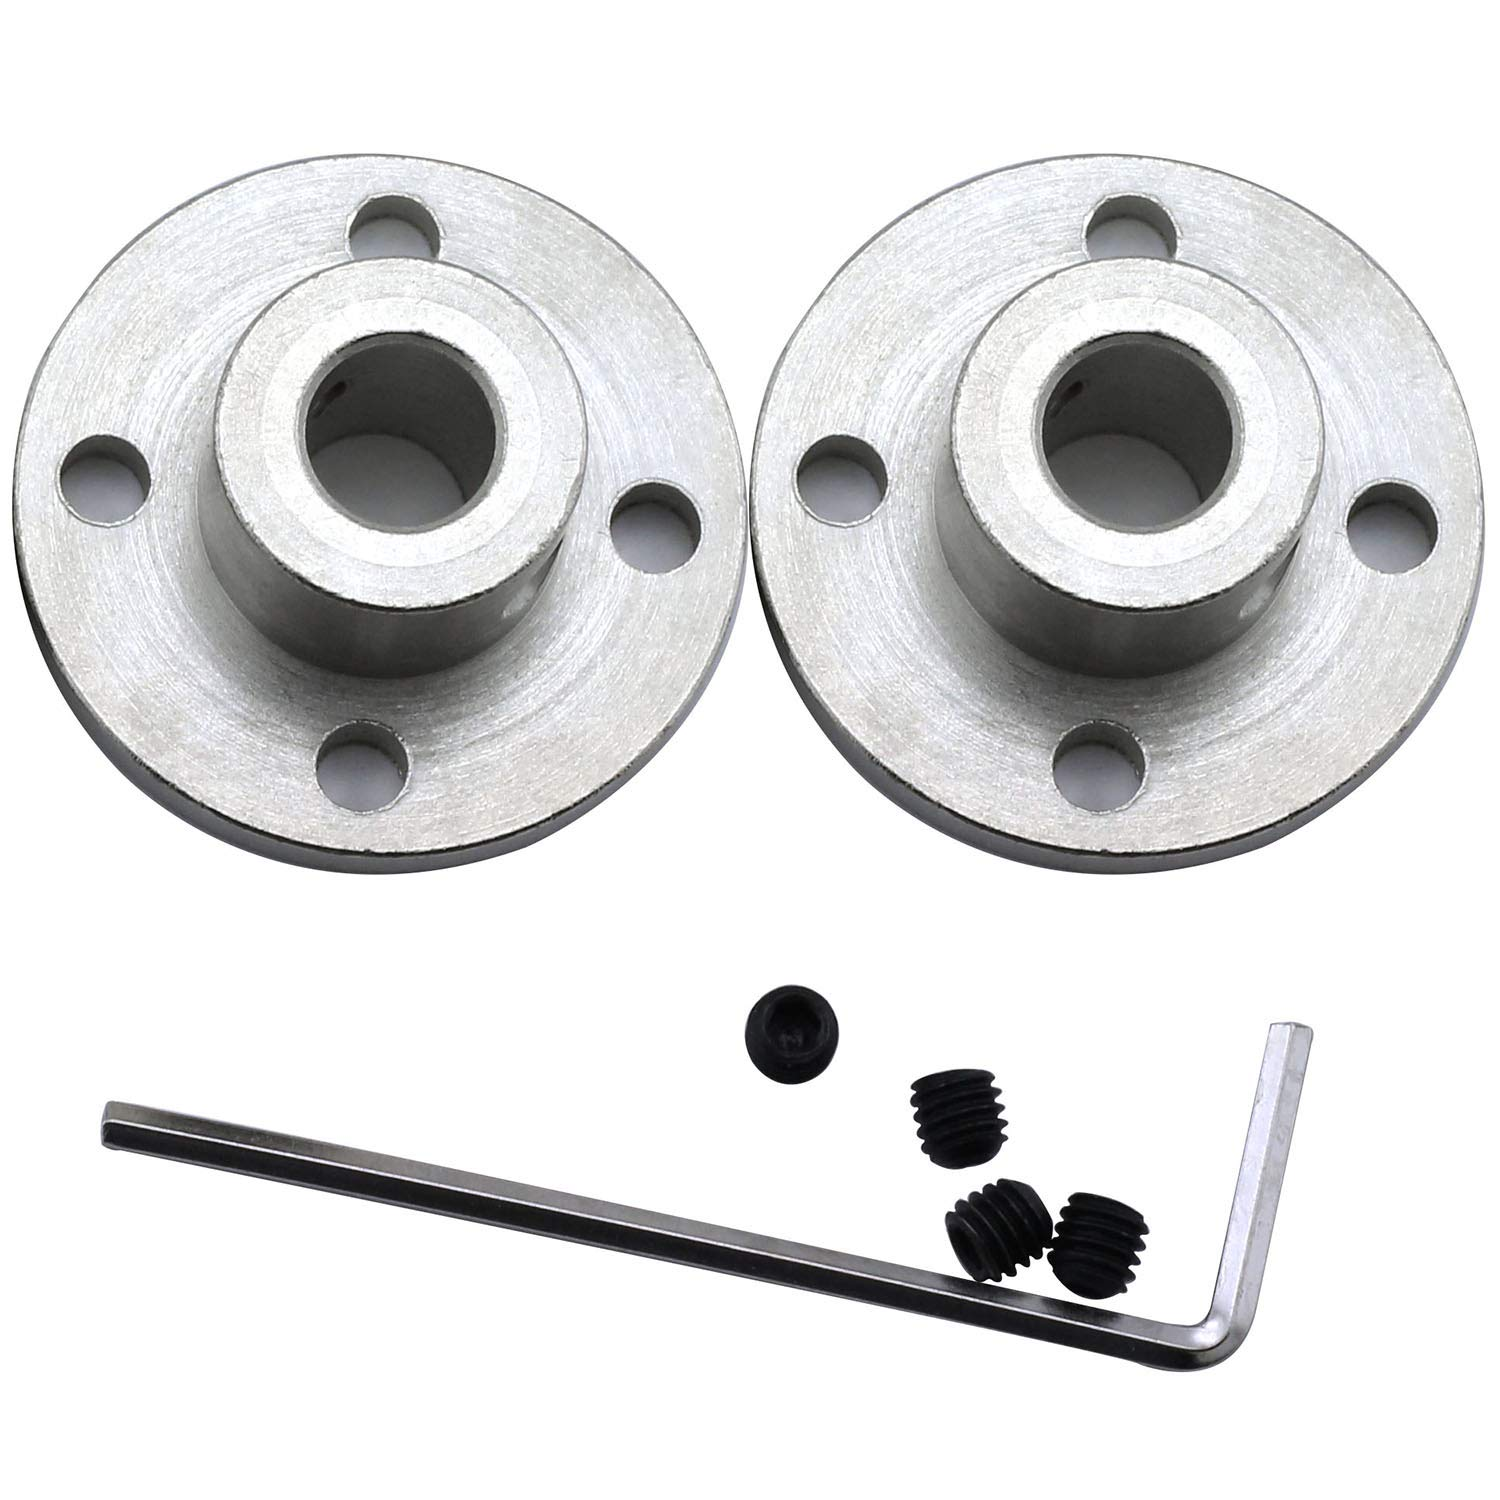 Magic&shell 2-Pack 8mm Flange Shaft Coupling High Hardness Metal Axis Bearing Fittings DIY Model Accessory Rigid Flange Guide Shaft Coupler Motor Connector